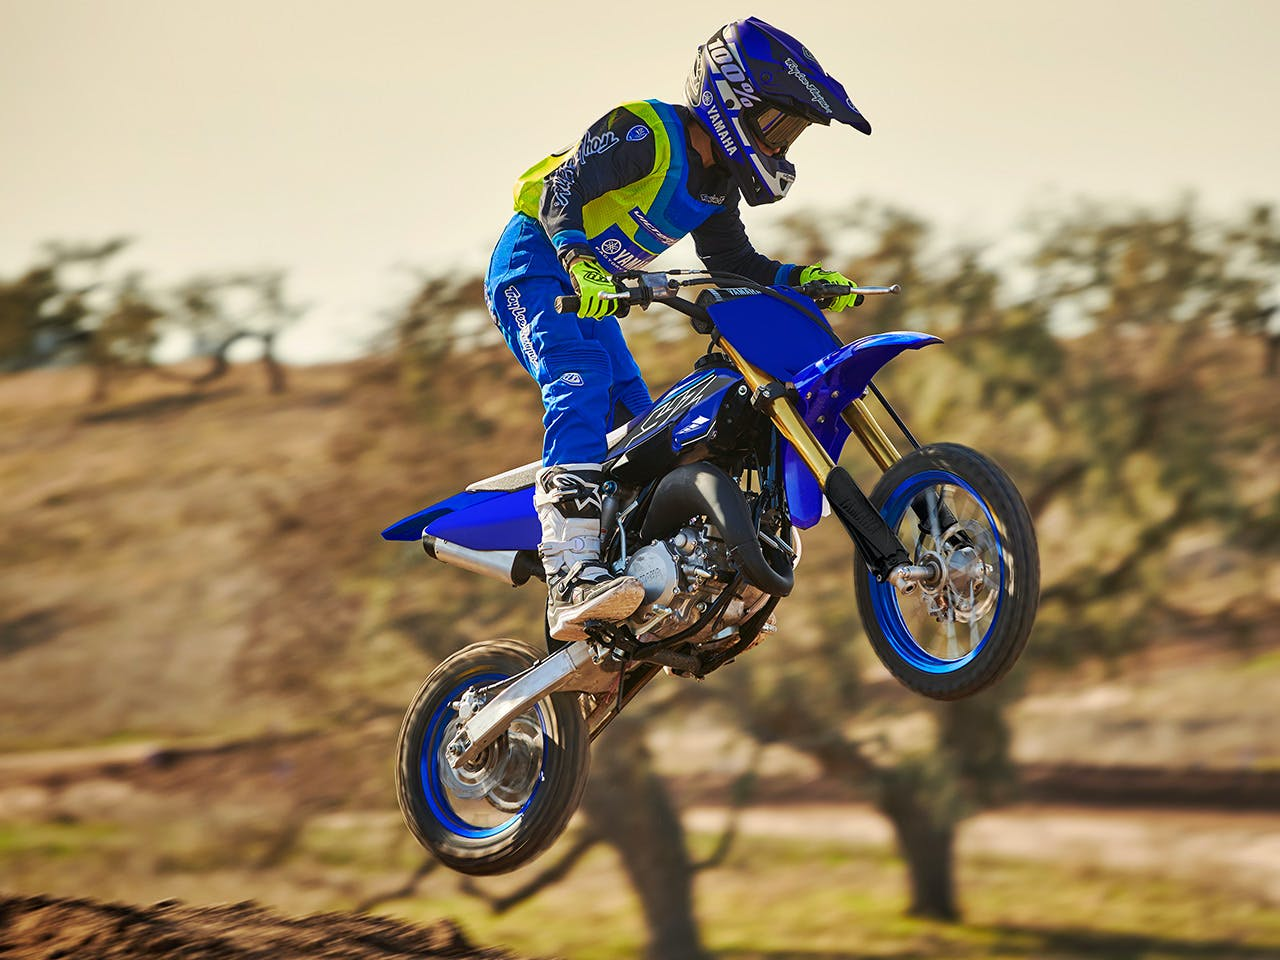 Yamaha YZ65 in team yamaha blue colour , being ridden off-track